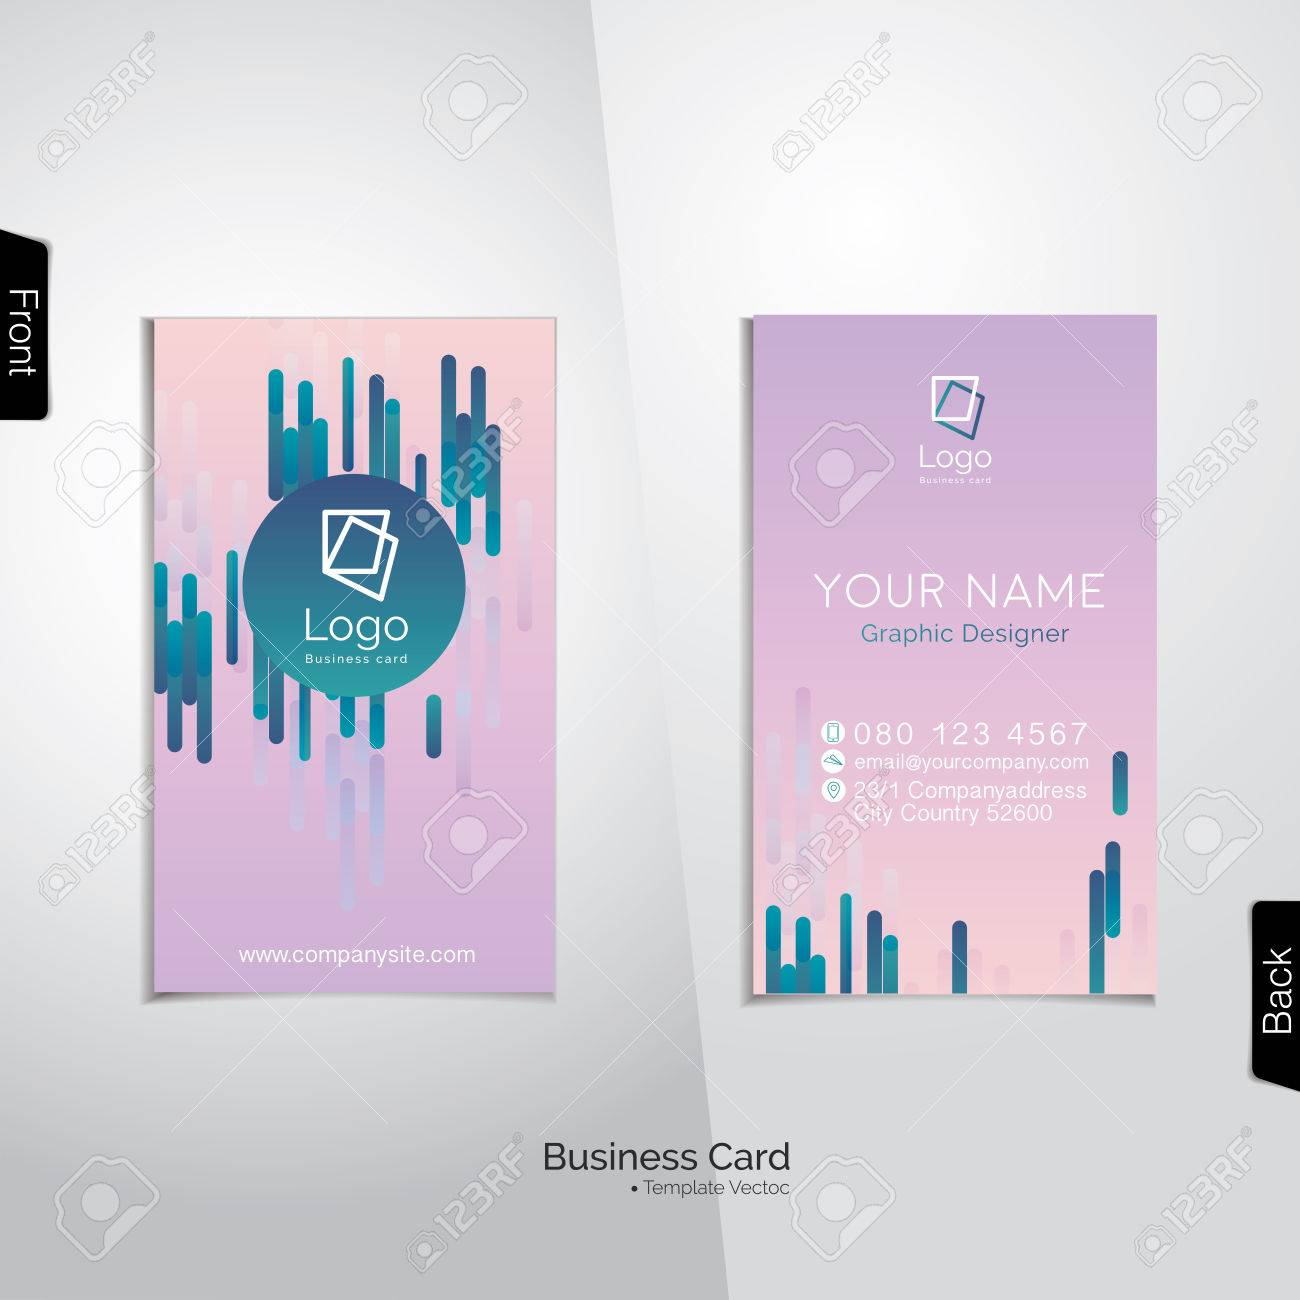 Modern Gradient Pinkish Purple Business Card With Abstract Vertical ...